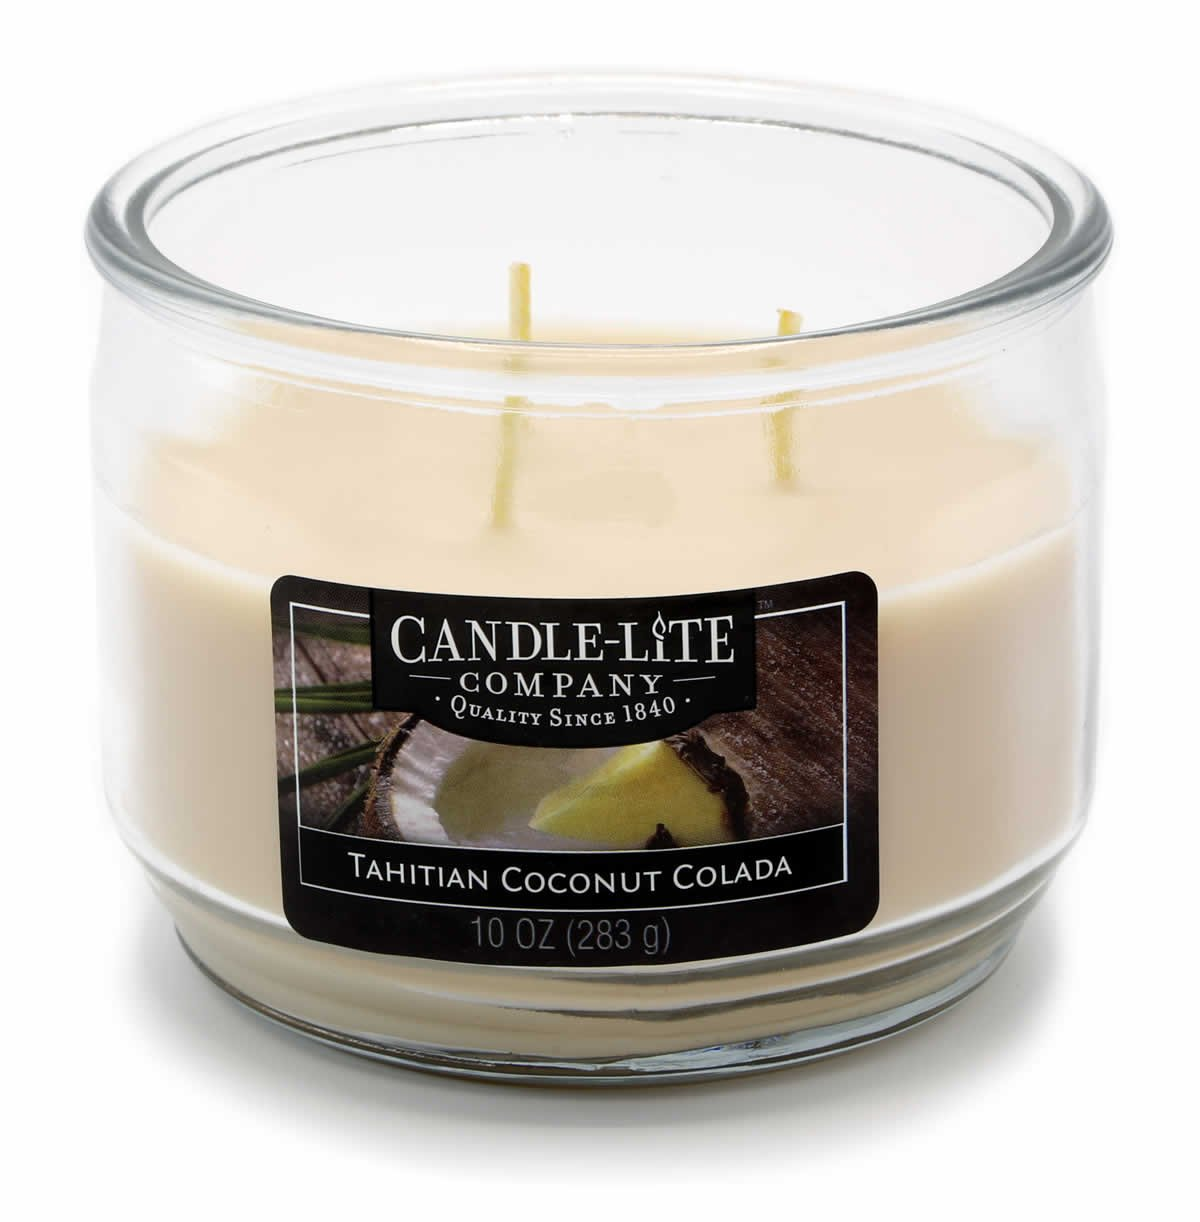 Candle Lite 3Wick Jar Candle–Tahitian Coconut Colada 283g, White, 10.5x 10.5x 8.2cm by Candlelite